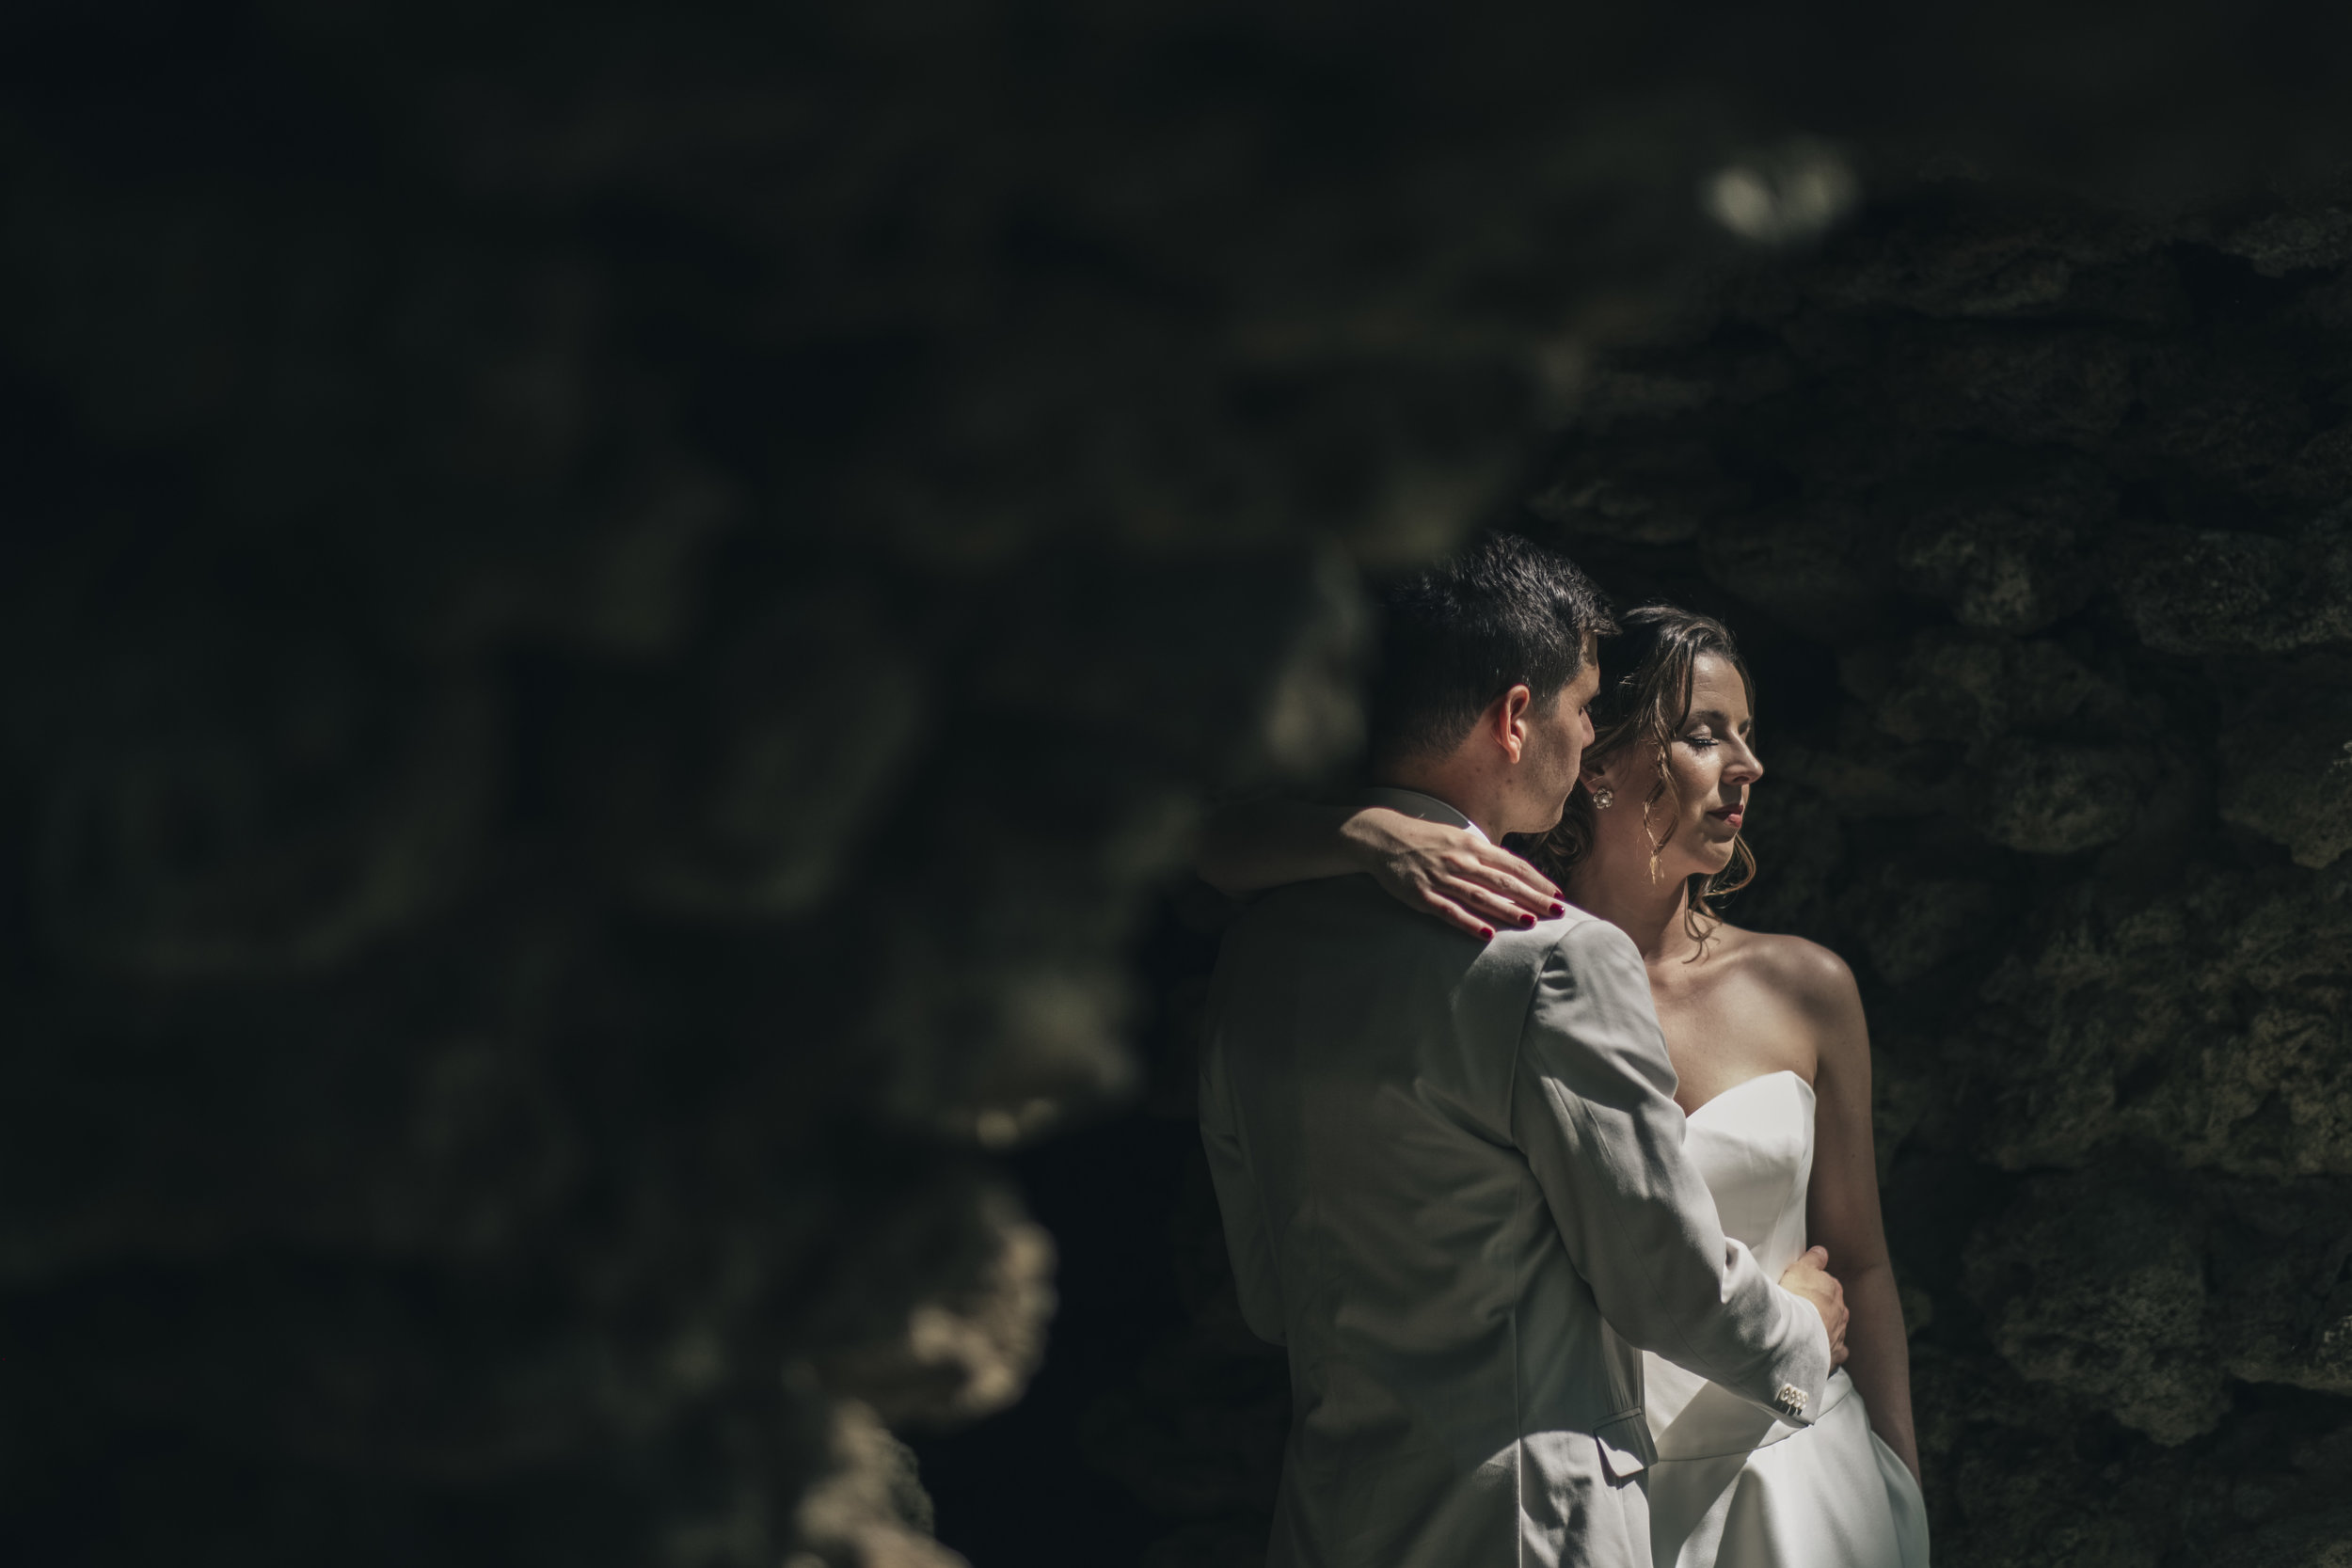 Portrait of the bride and groom during their creative session.